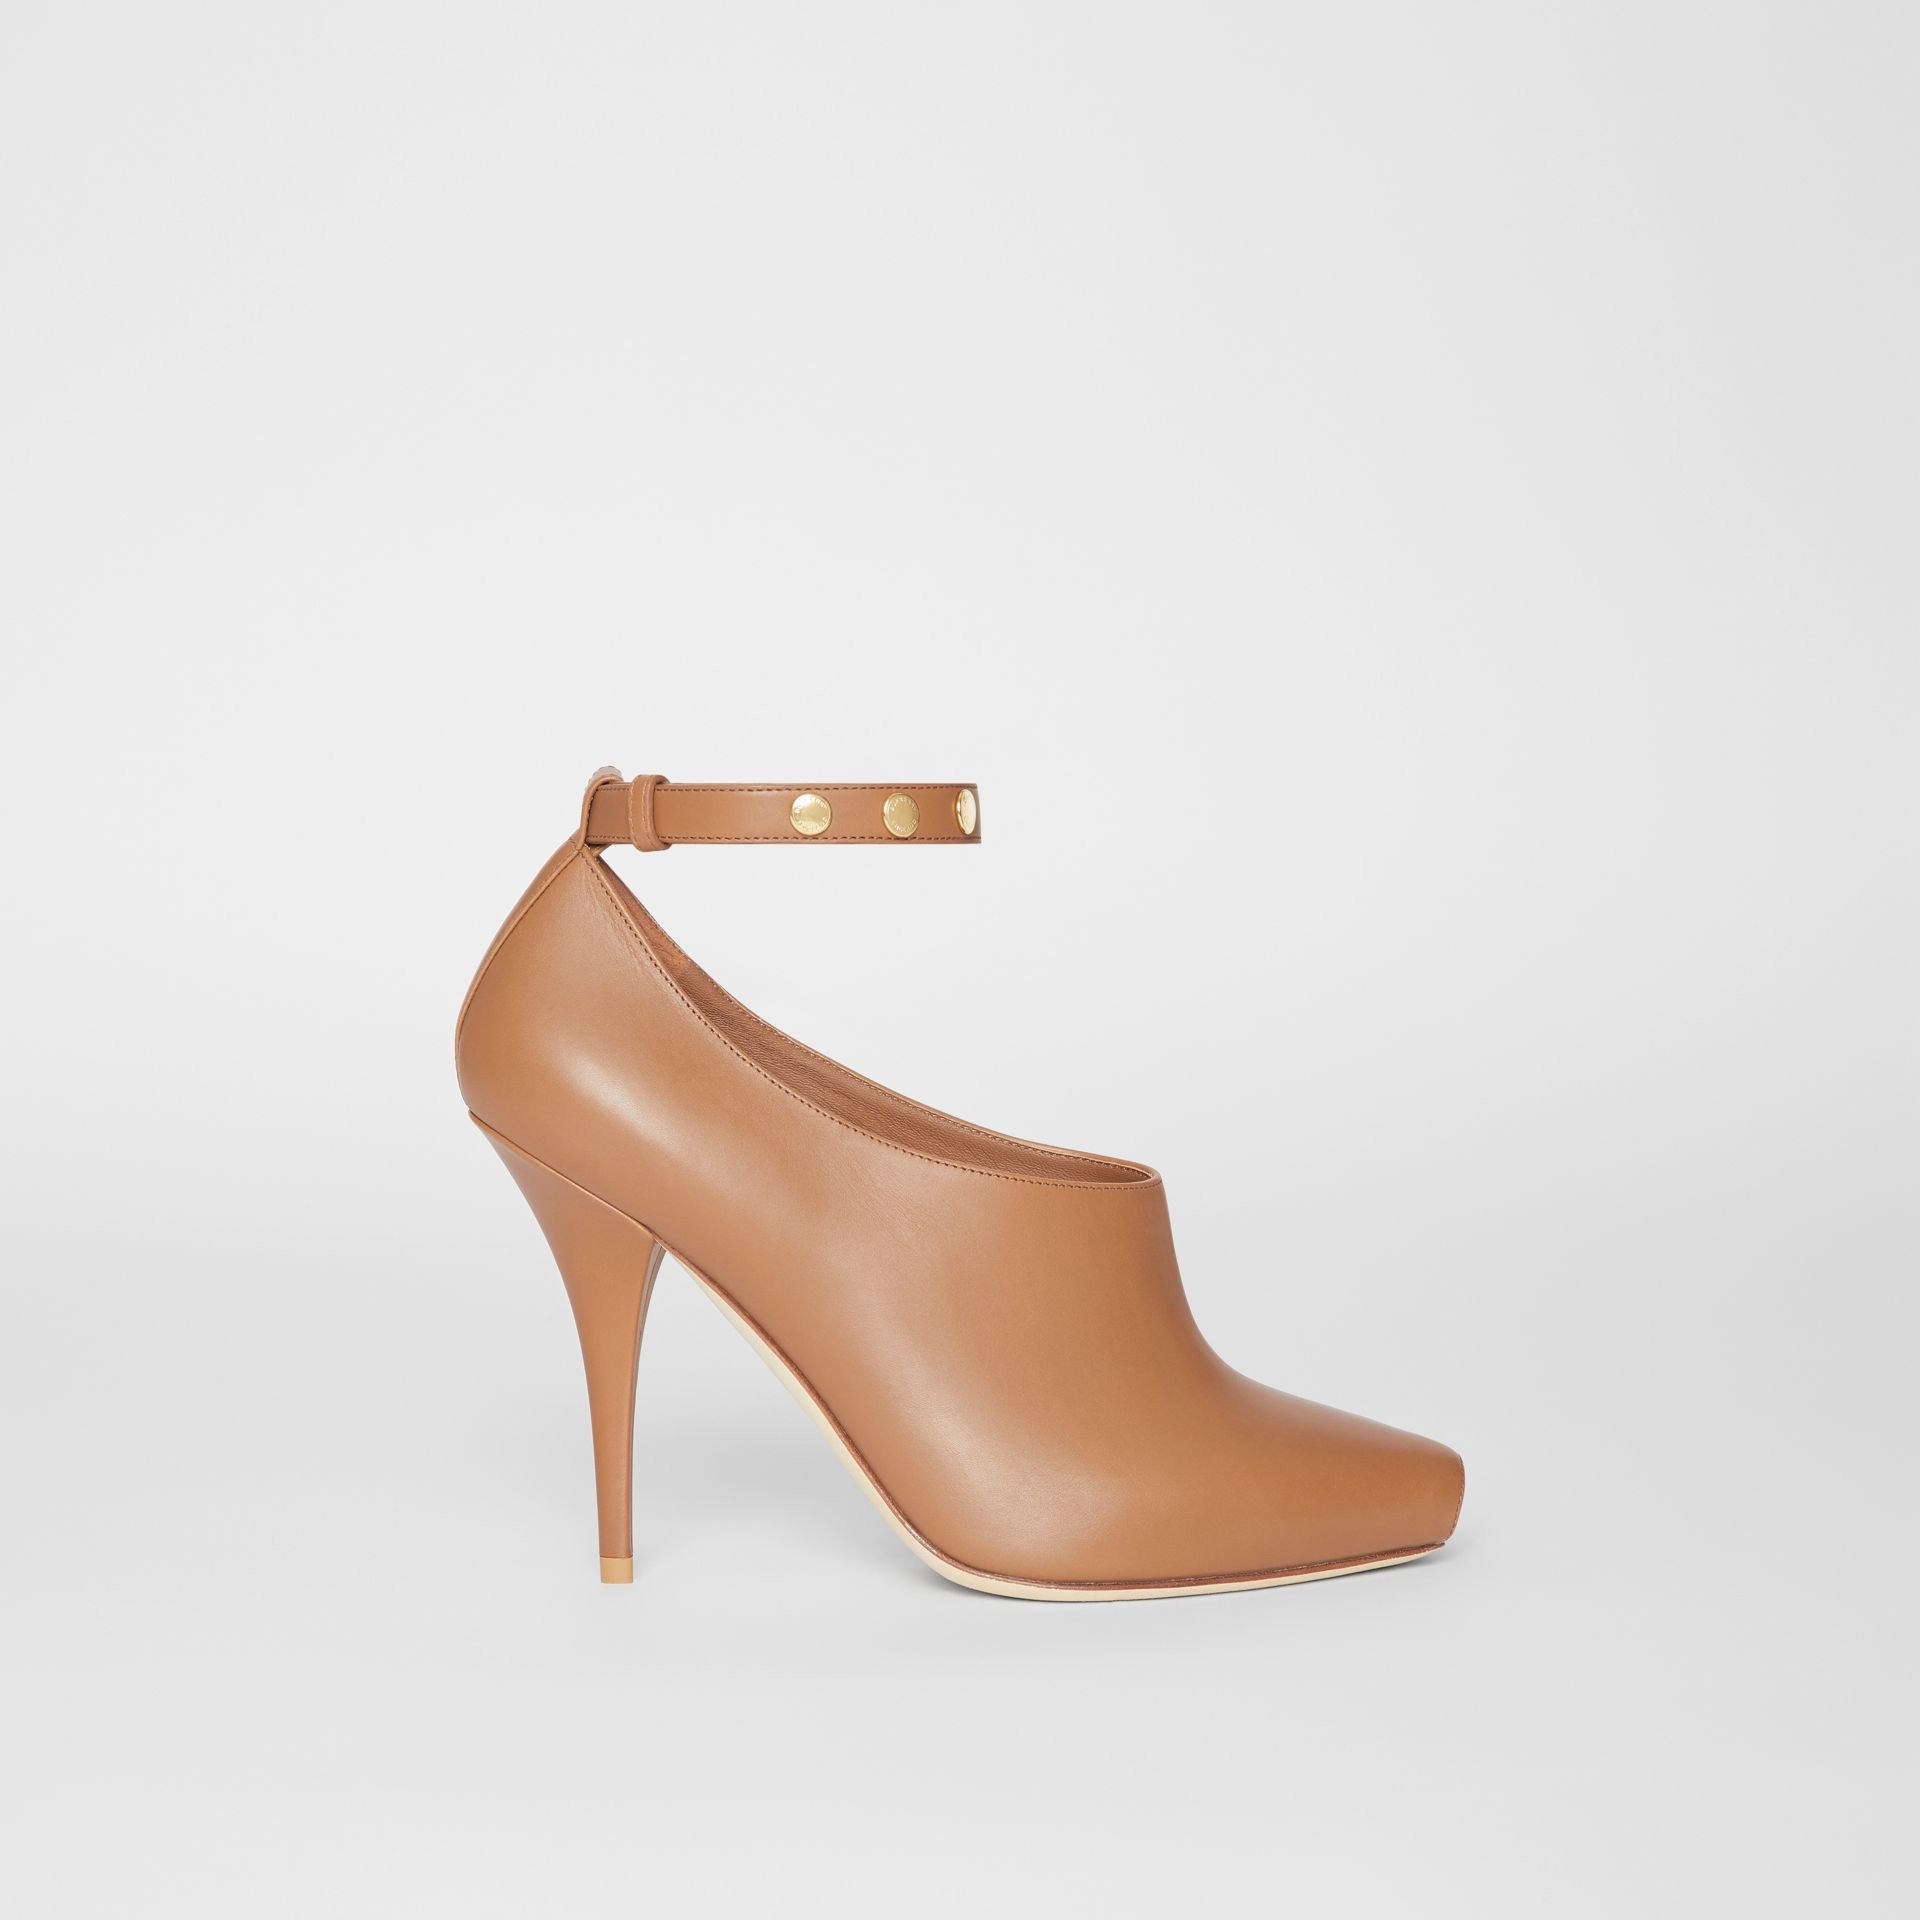 Leather Peep-toe Pumps in Amber Brown - Women | Burberry - gallery image 5